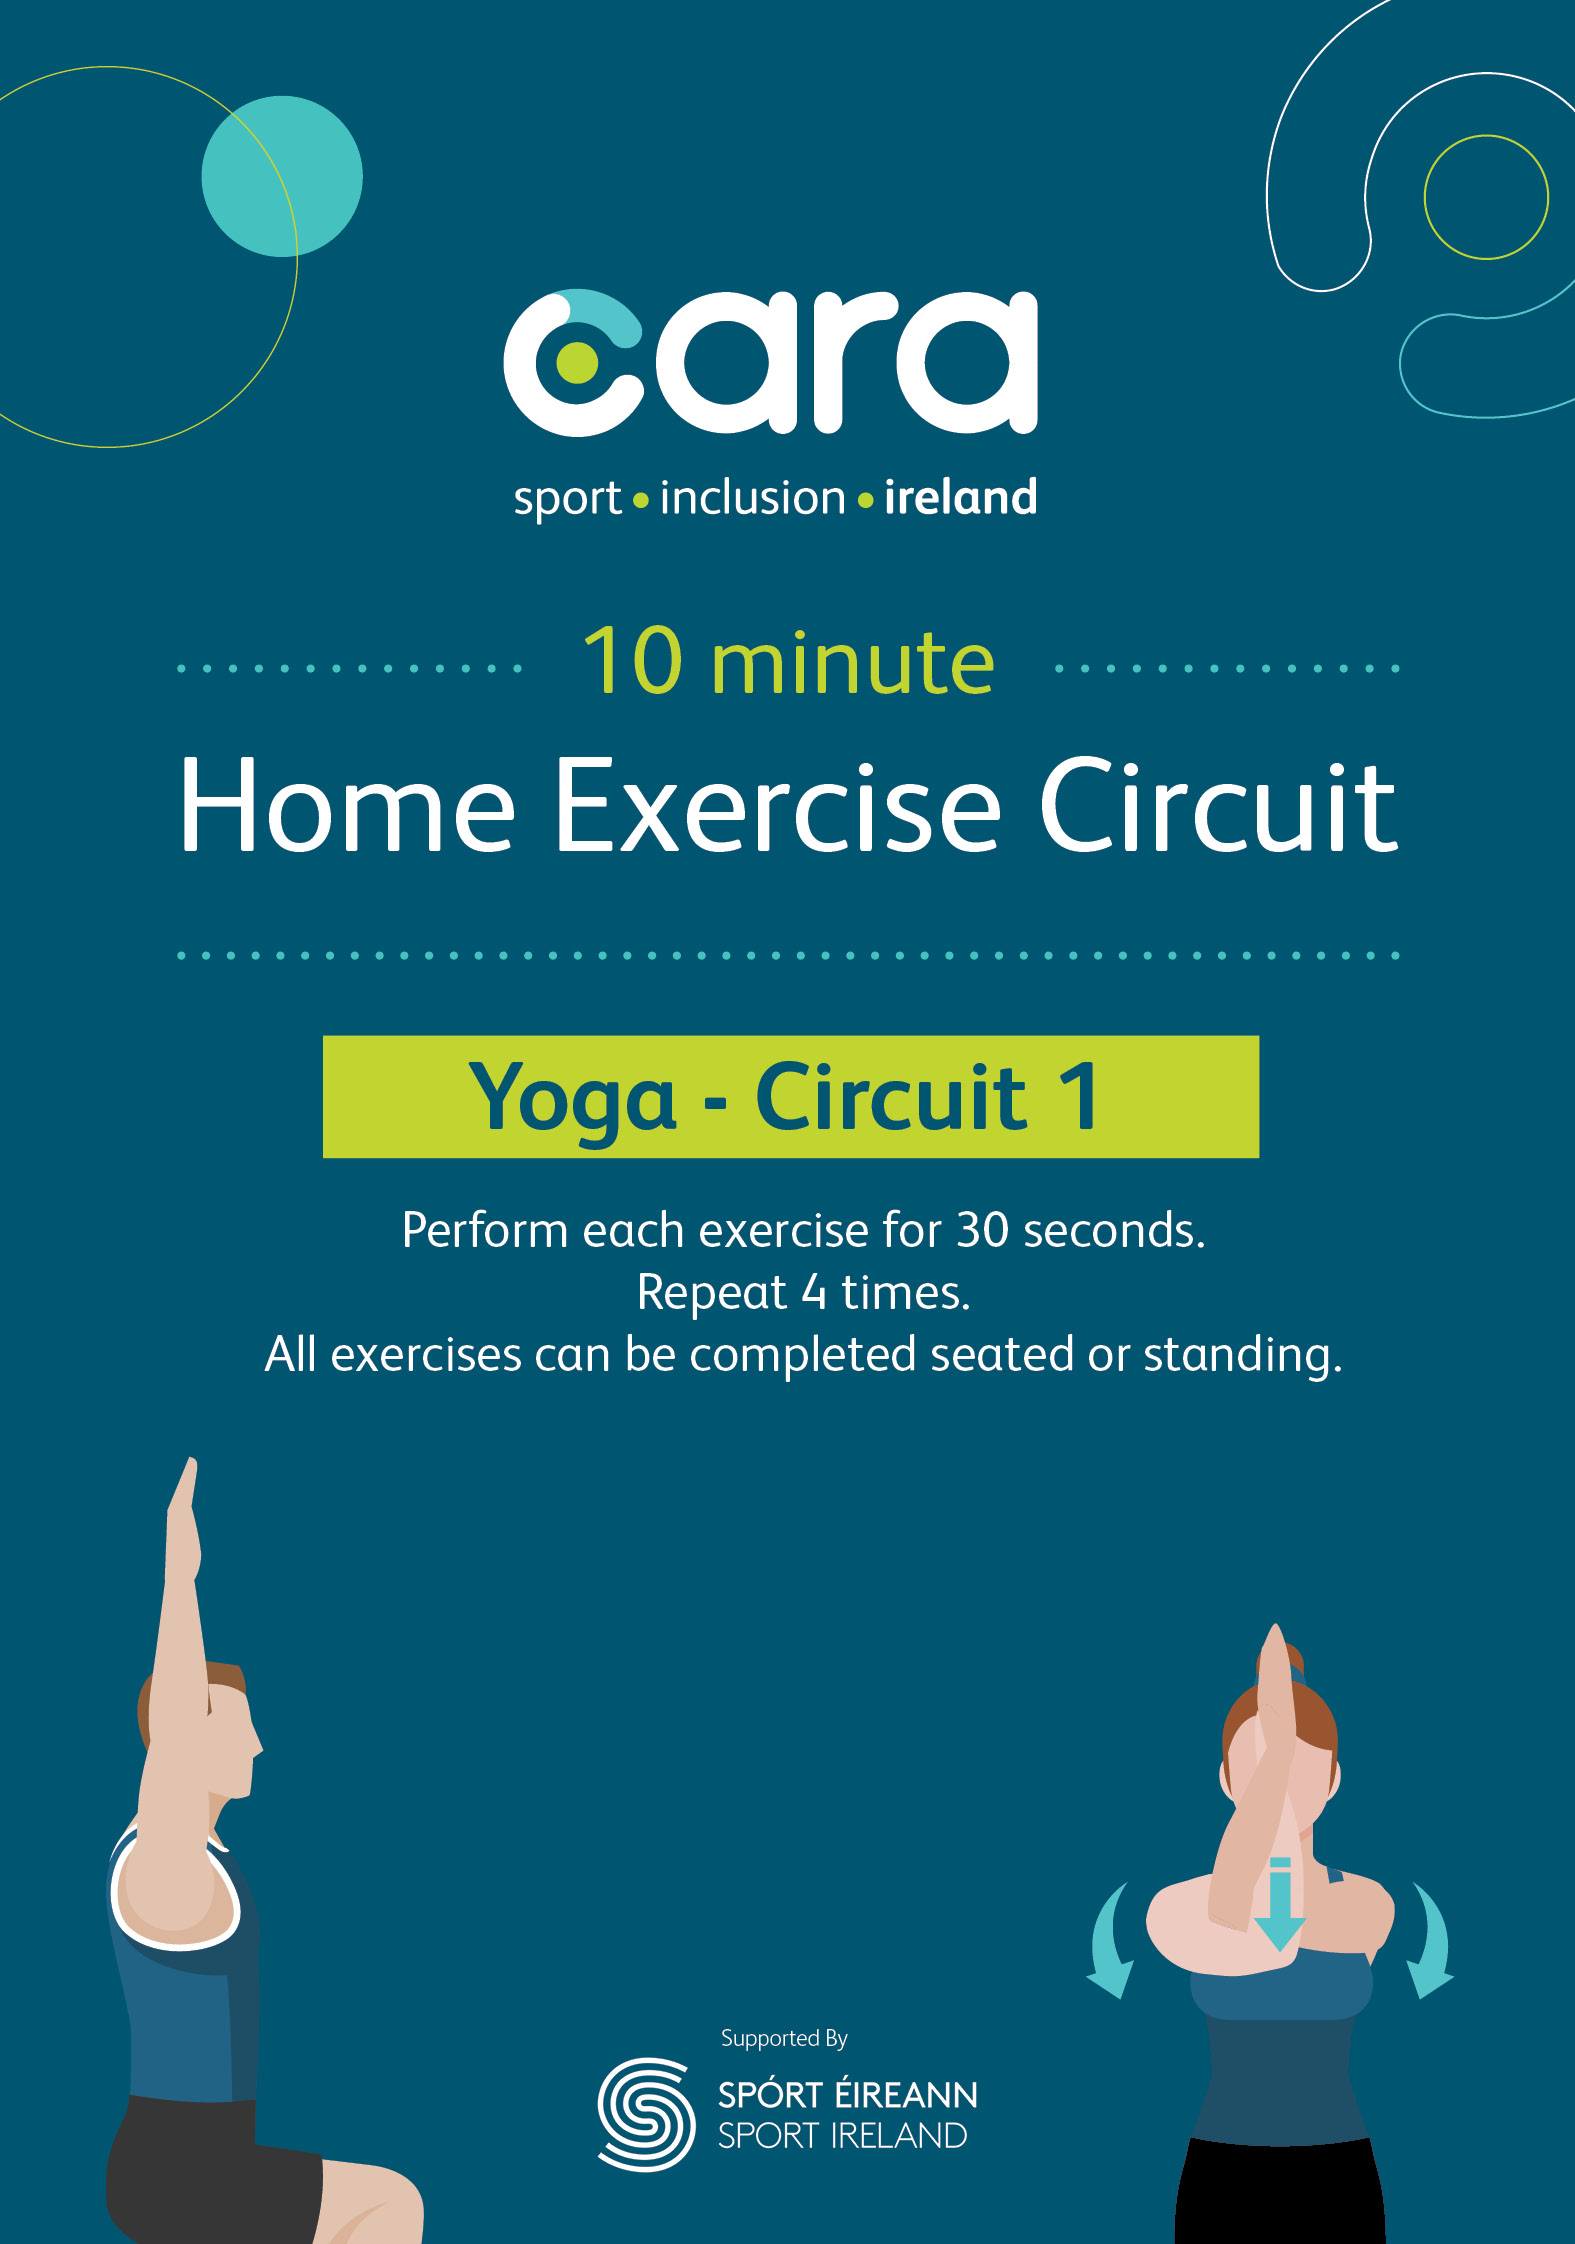 Cara-Yoga-Circuit-1